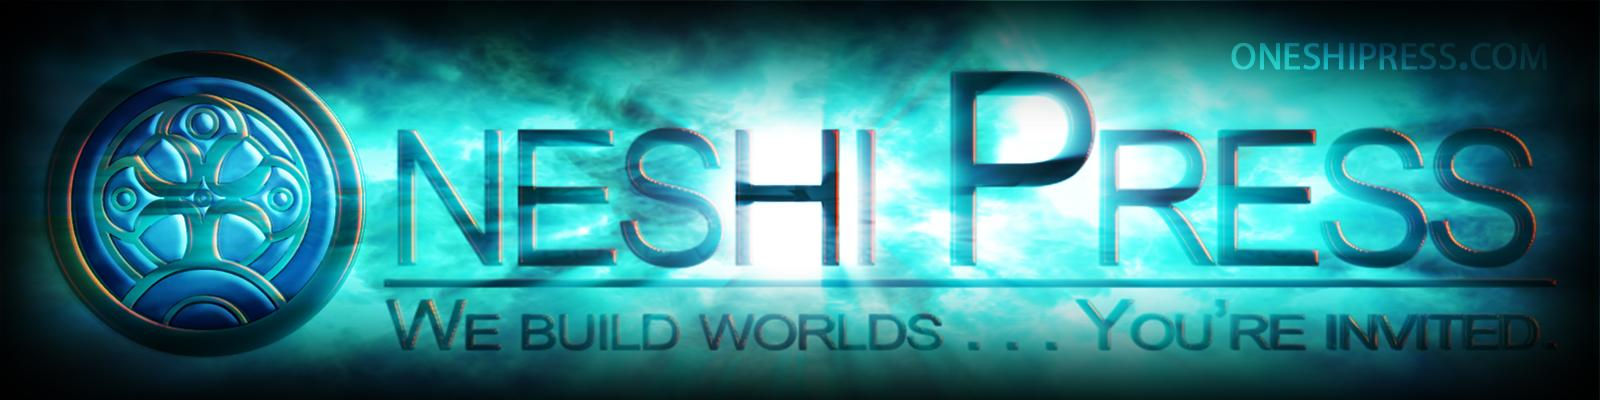 Oneshi Press: We build Worlds... You're Invited - Cosmic Banner